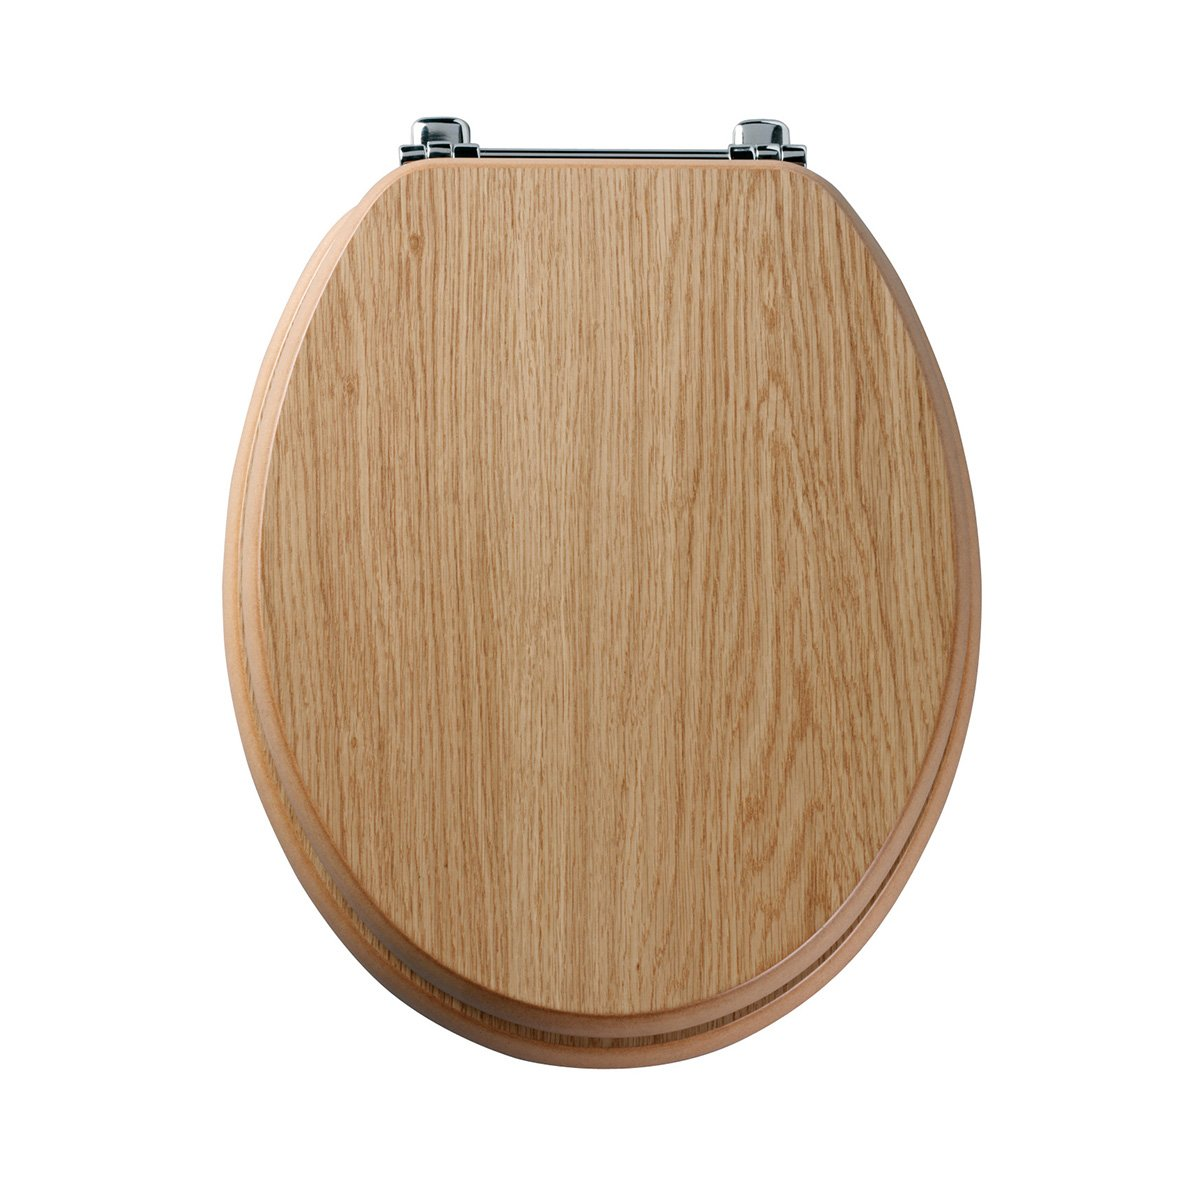 "18/"" MDF NATURAL COLOUR PINE WOOD TOILET SEAT"